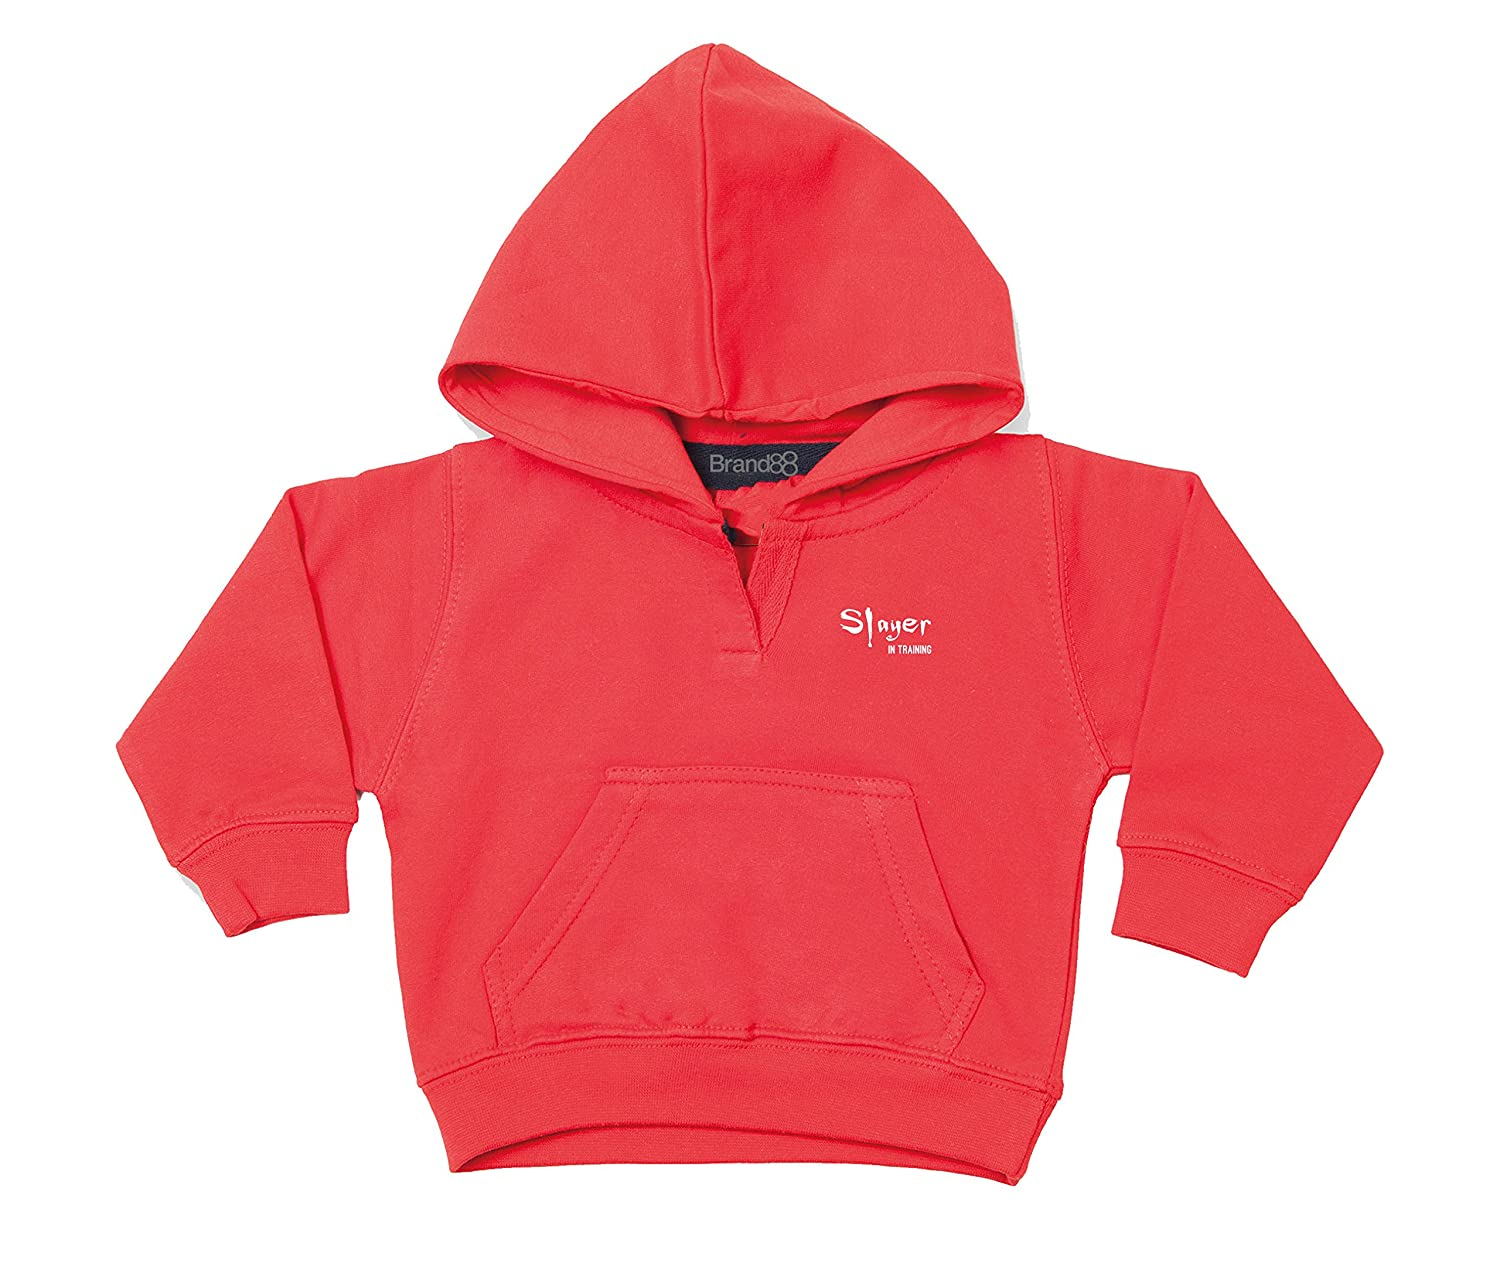 Brand88 Slayer In Training, Toddler Hooded Sweatshirt LW02T_AU040